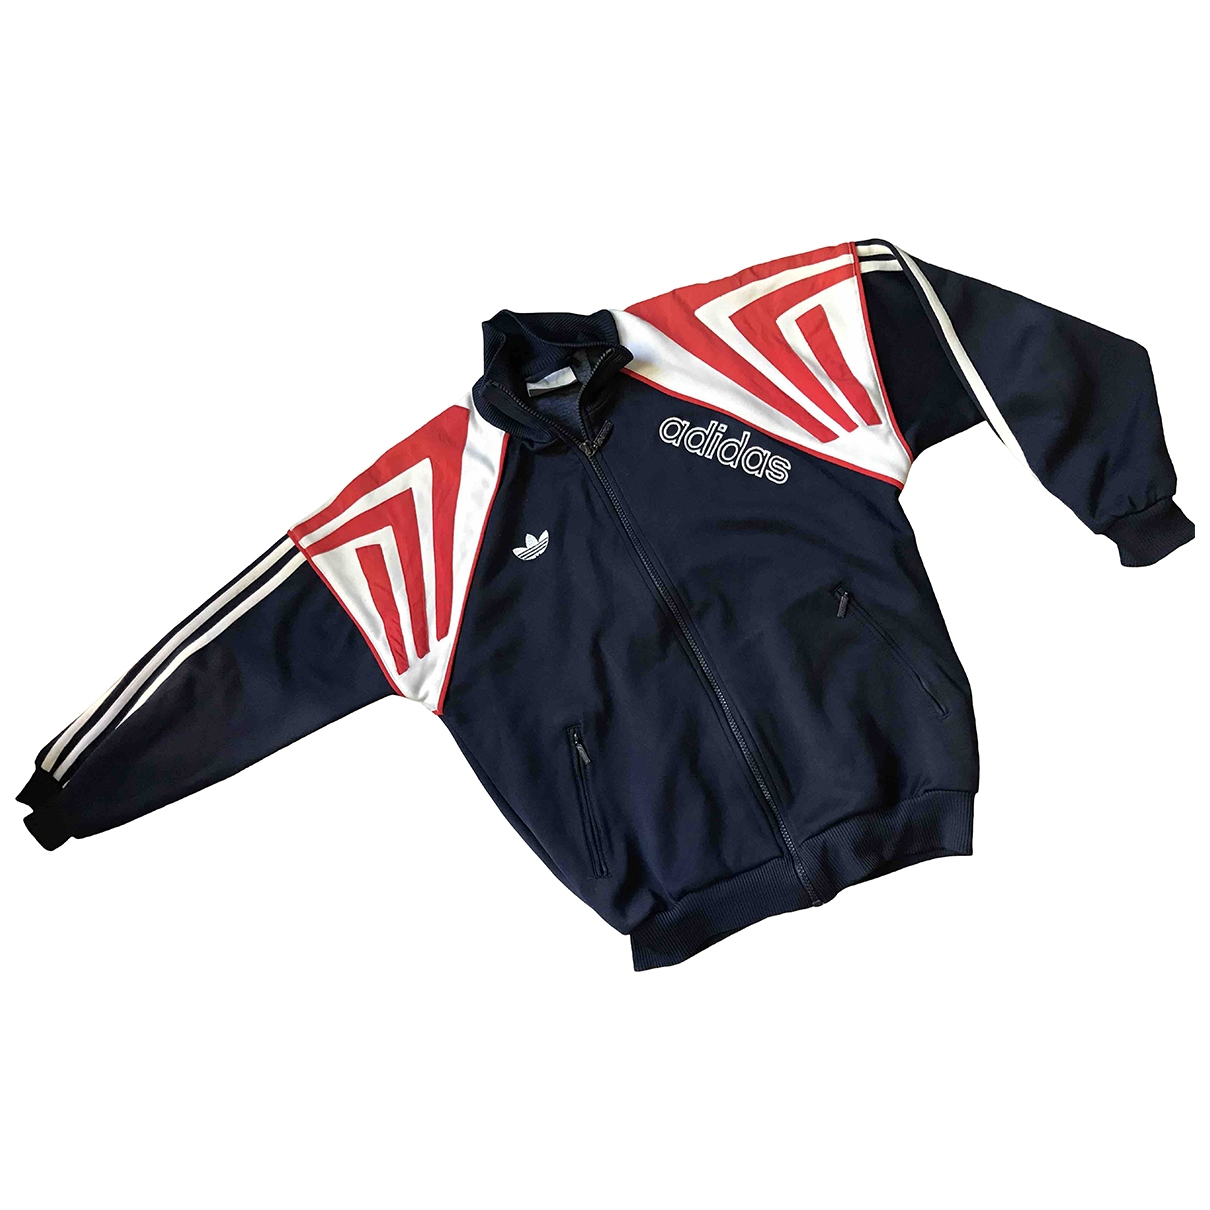 Adidas \N Navy Cotton jacket for Women 36 FR